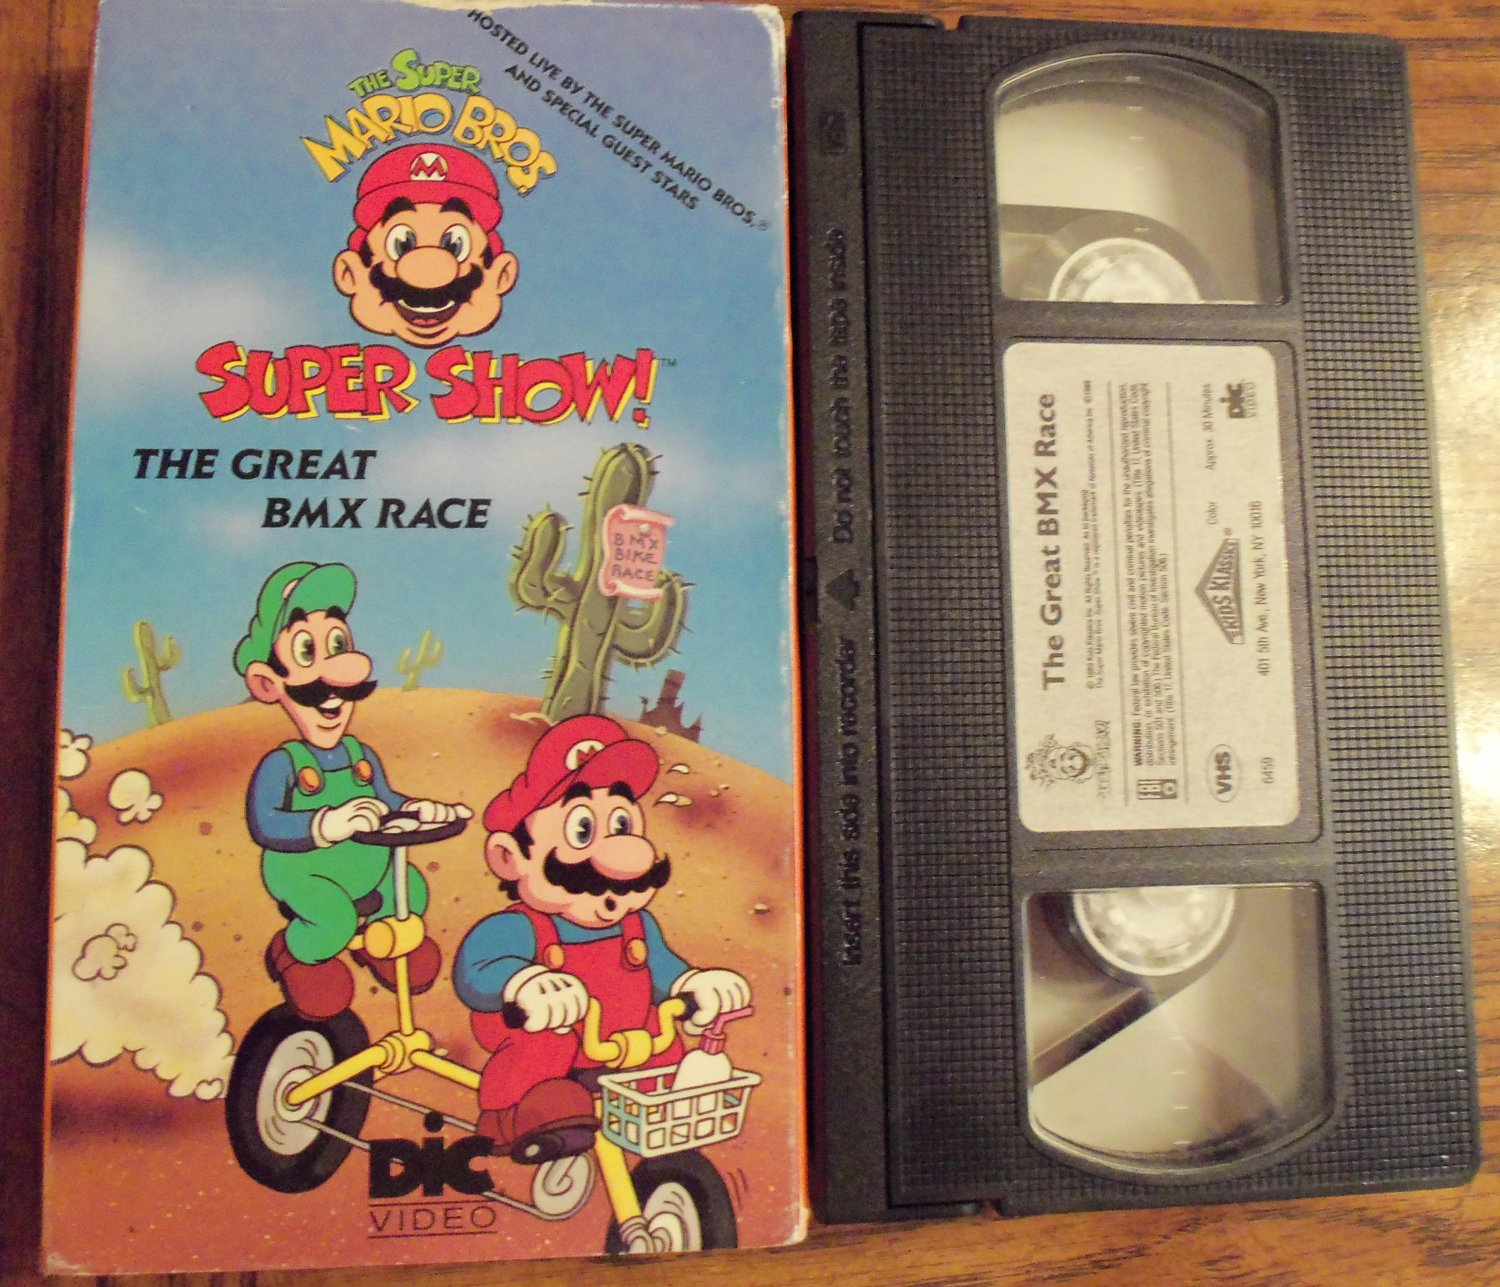 The Super Mario Bros. Super Show The Great BMX Race Vhs Tape Video 1M